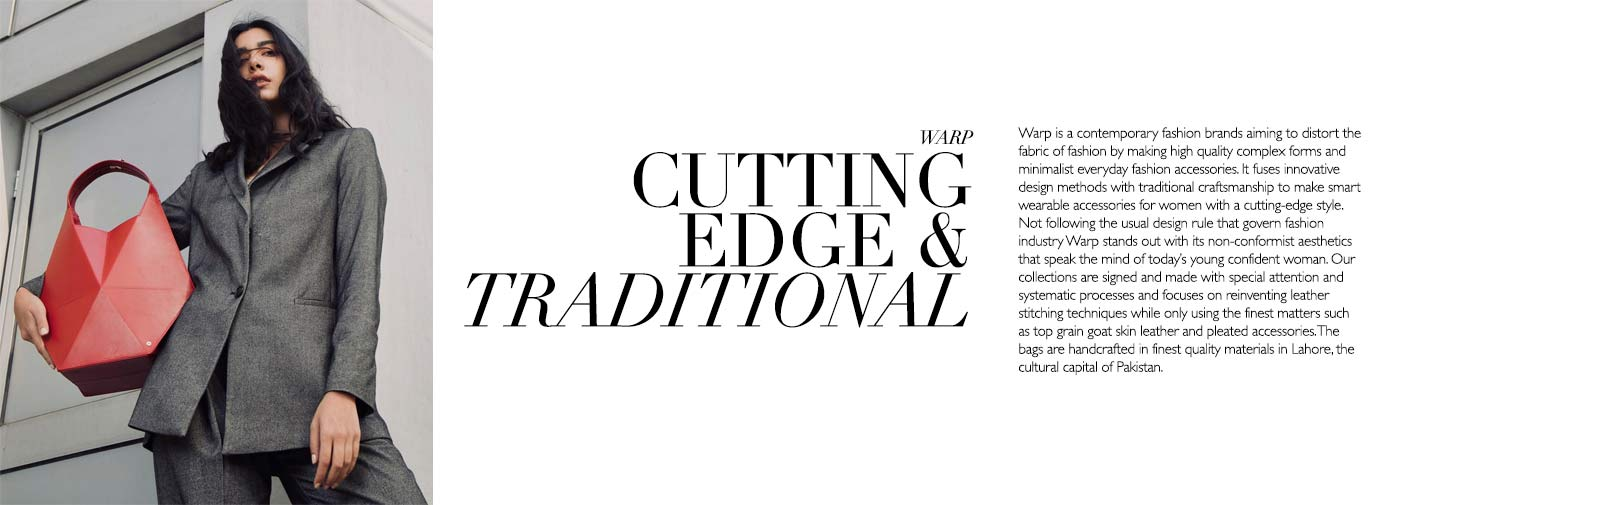 WARP - CUTTING EDGE & TRADITIONAL - Warp is a contemporary fashion brands aiming to distort the fabric of fashion by making high quality complex forms and minimalist everyday fashion accessories. It fuses innovative design methods with traditional craftsmanship to make smart wearable accessories for women with a cutting-edge style. Not following the usual design rule that govern fashion industry Warp stands out with its non-conformist aesthetics that speak the mind of today's young confident woman. Our collections are signed and made with special attention and systematic processes and focuses on reinventing leather stitching techniques while only using the finest matters such as top grain goat skin leather and pleated accessories. The bags are handcrafted in finest quality materials in Lahore, the cultural capital of Pakistan.